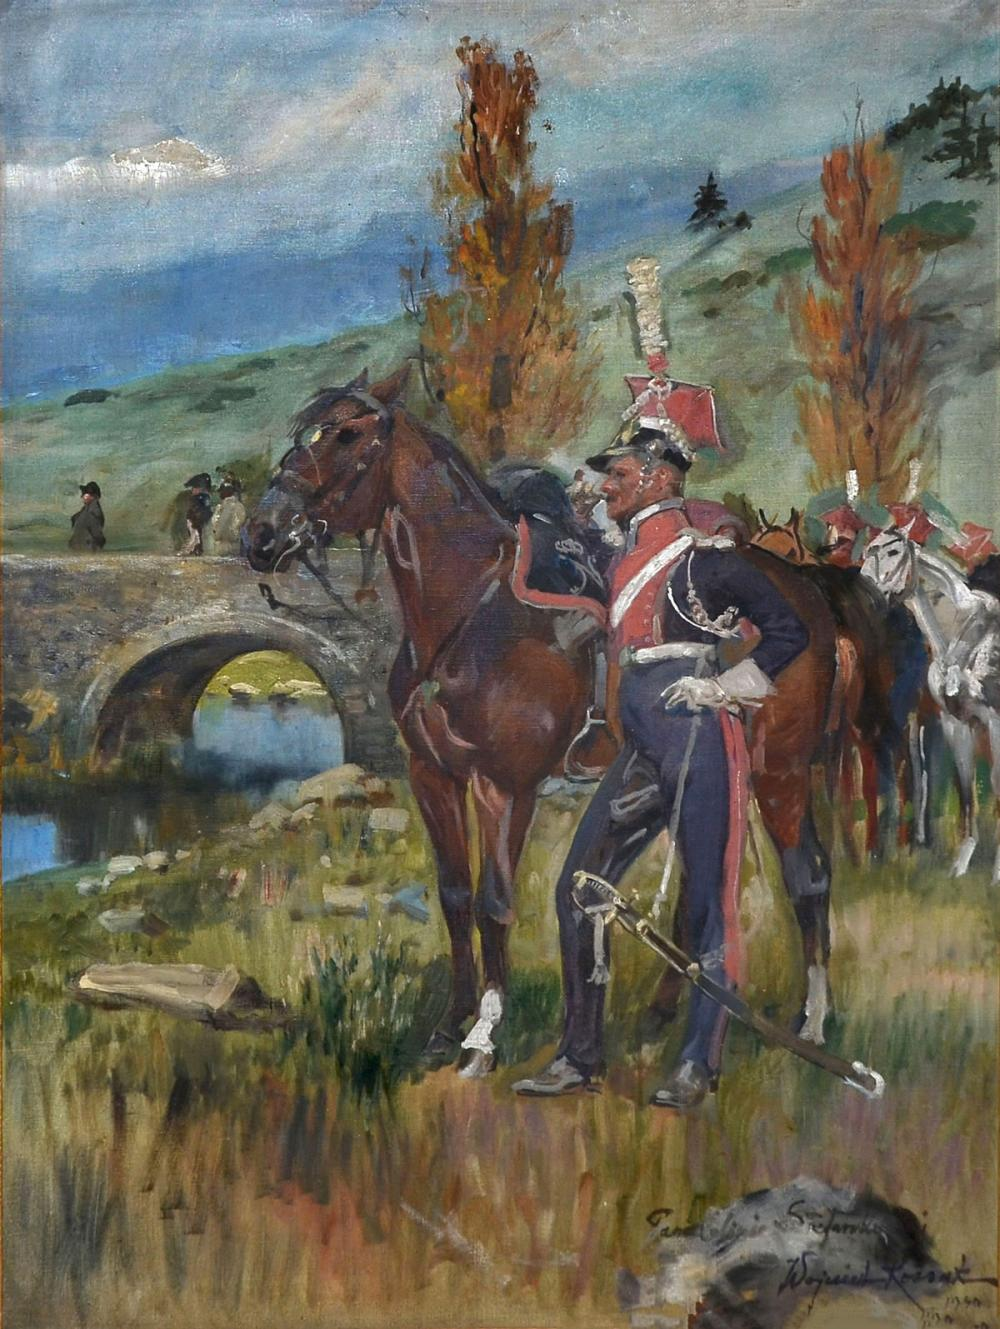 KOSSAK MILITARY PAINTING WITH OFFICERS & HORSES